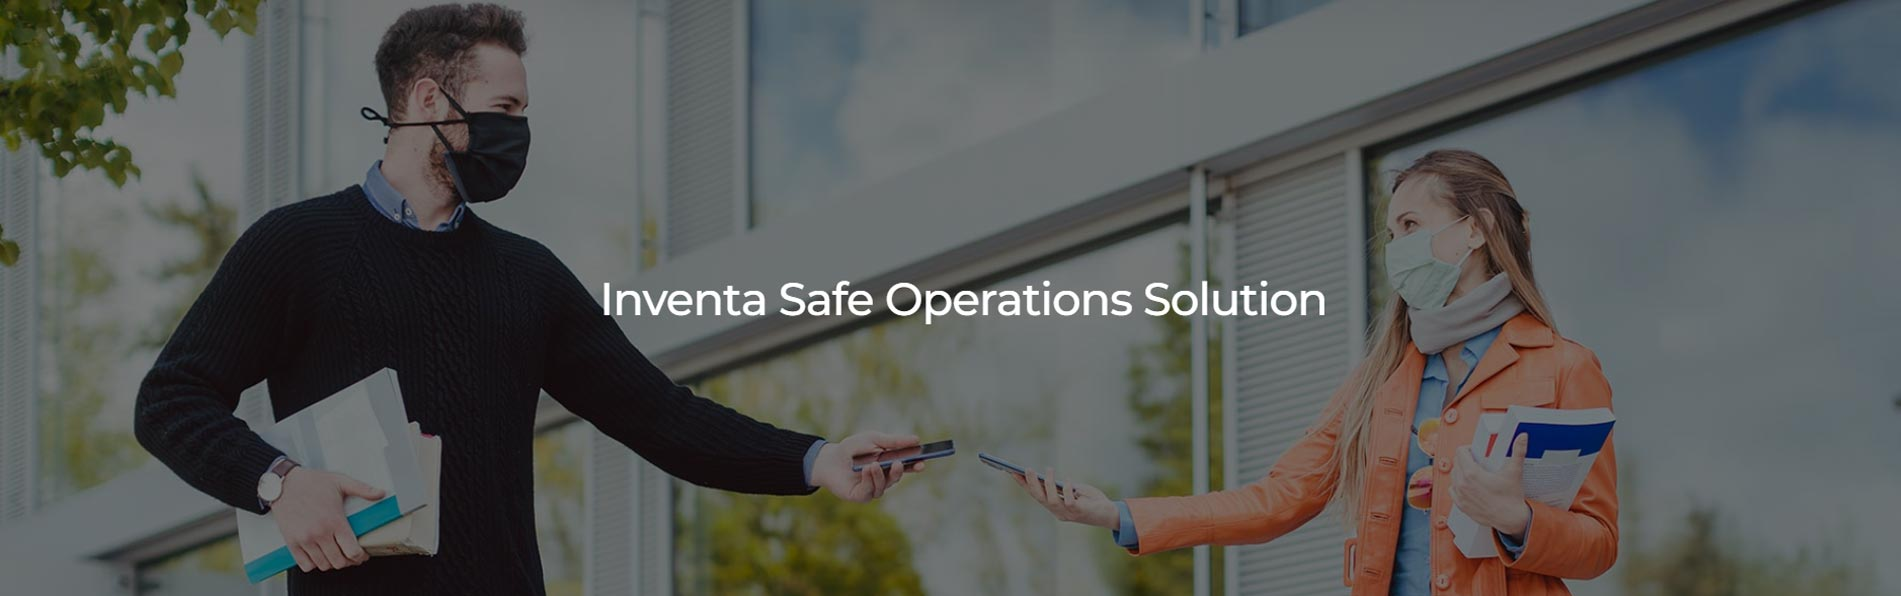 Inventa Safe Operations Solution